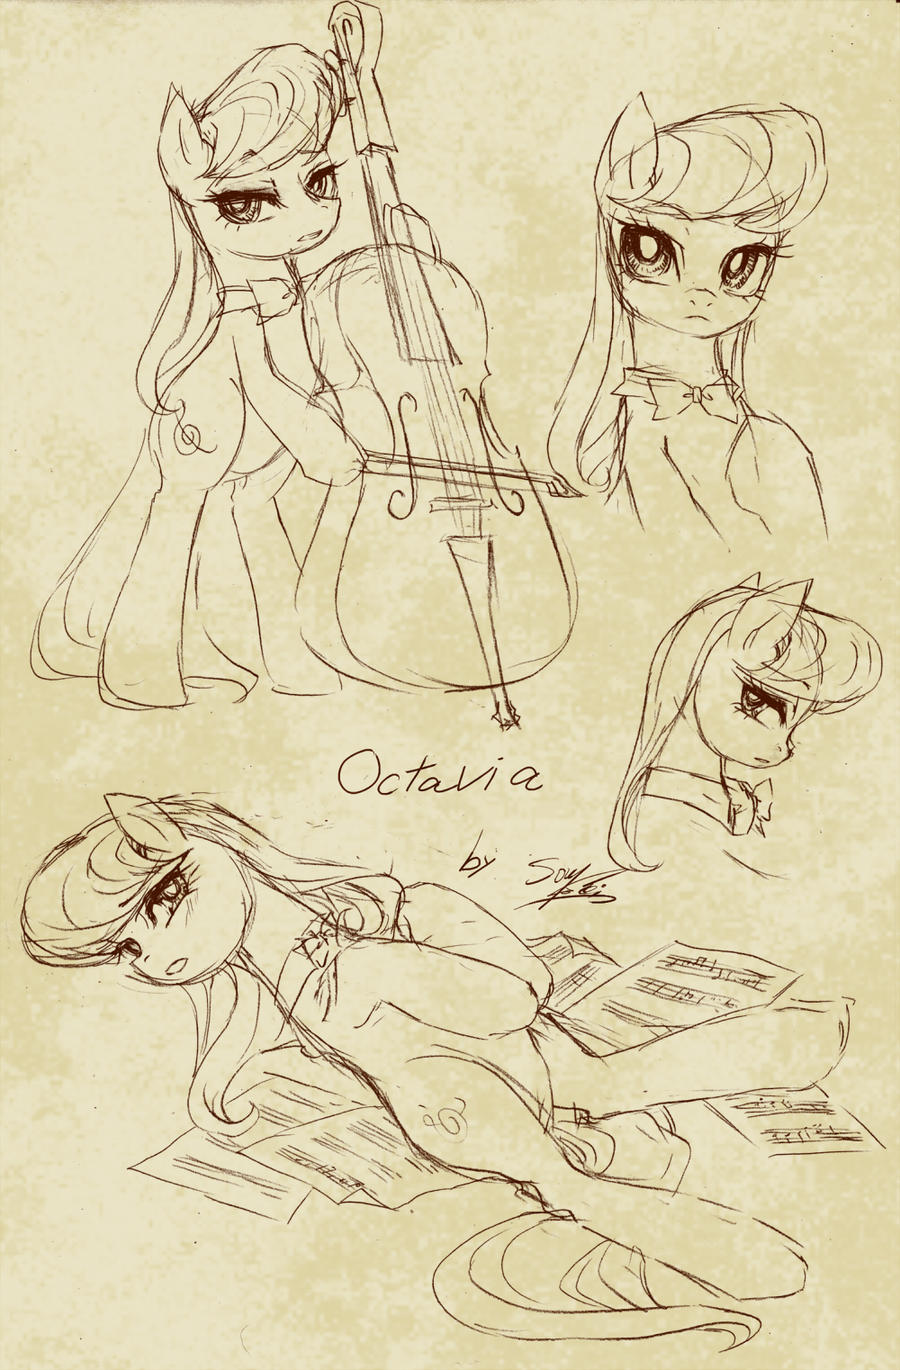 A sketch of Octavia by SoukiTsubasa